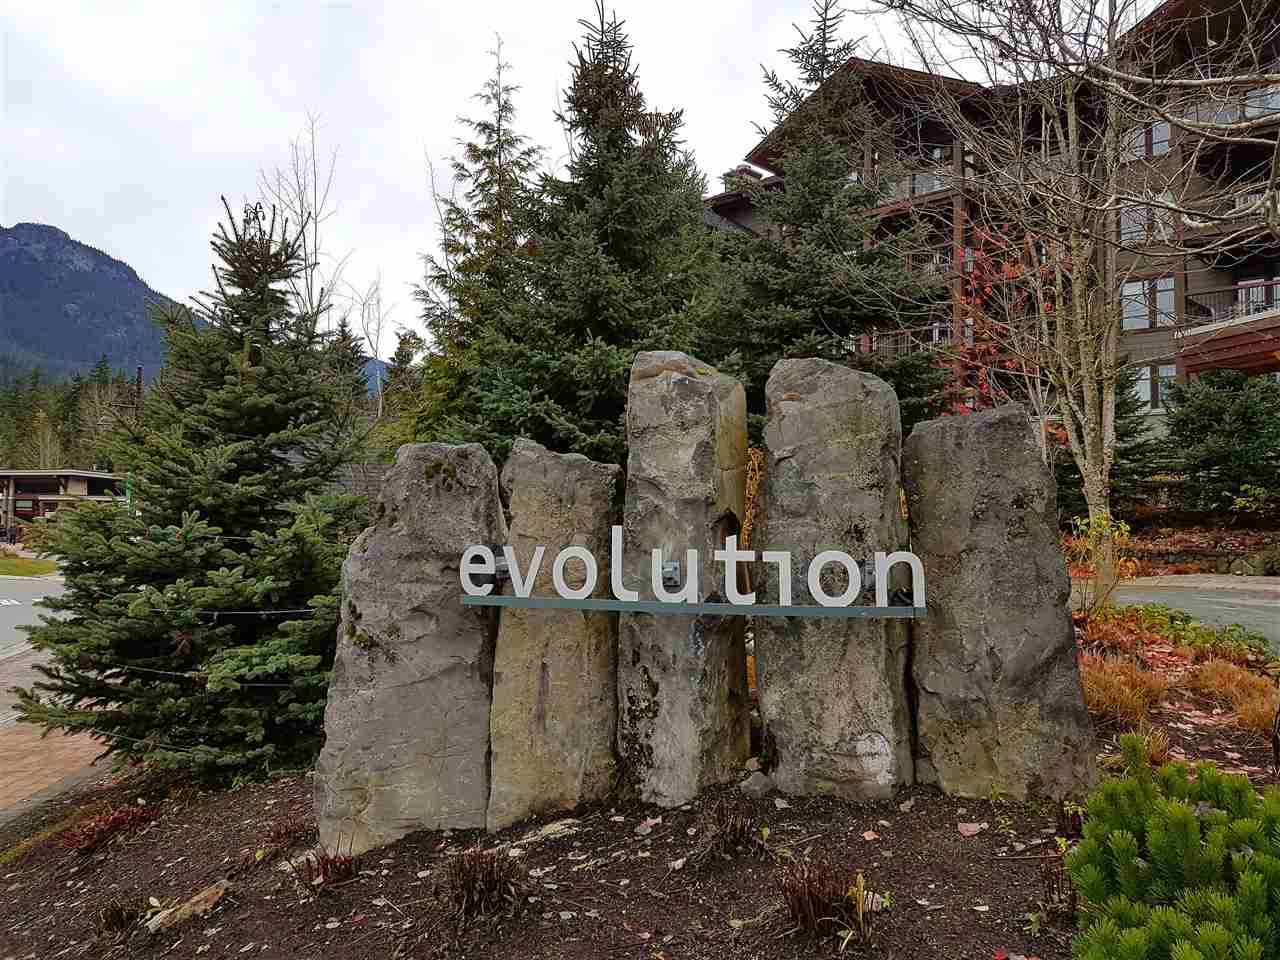 "Main Photo: 413b 2020 LONDON Lane in Whistler: Whistler Creek Condo for sale in ""Evolution"" : MLS® # R2122024"